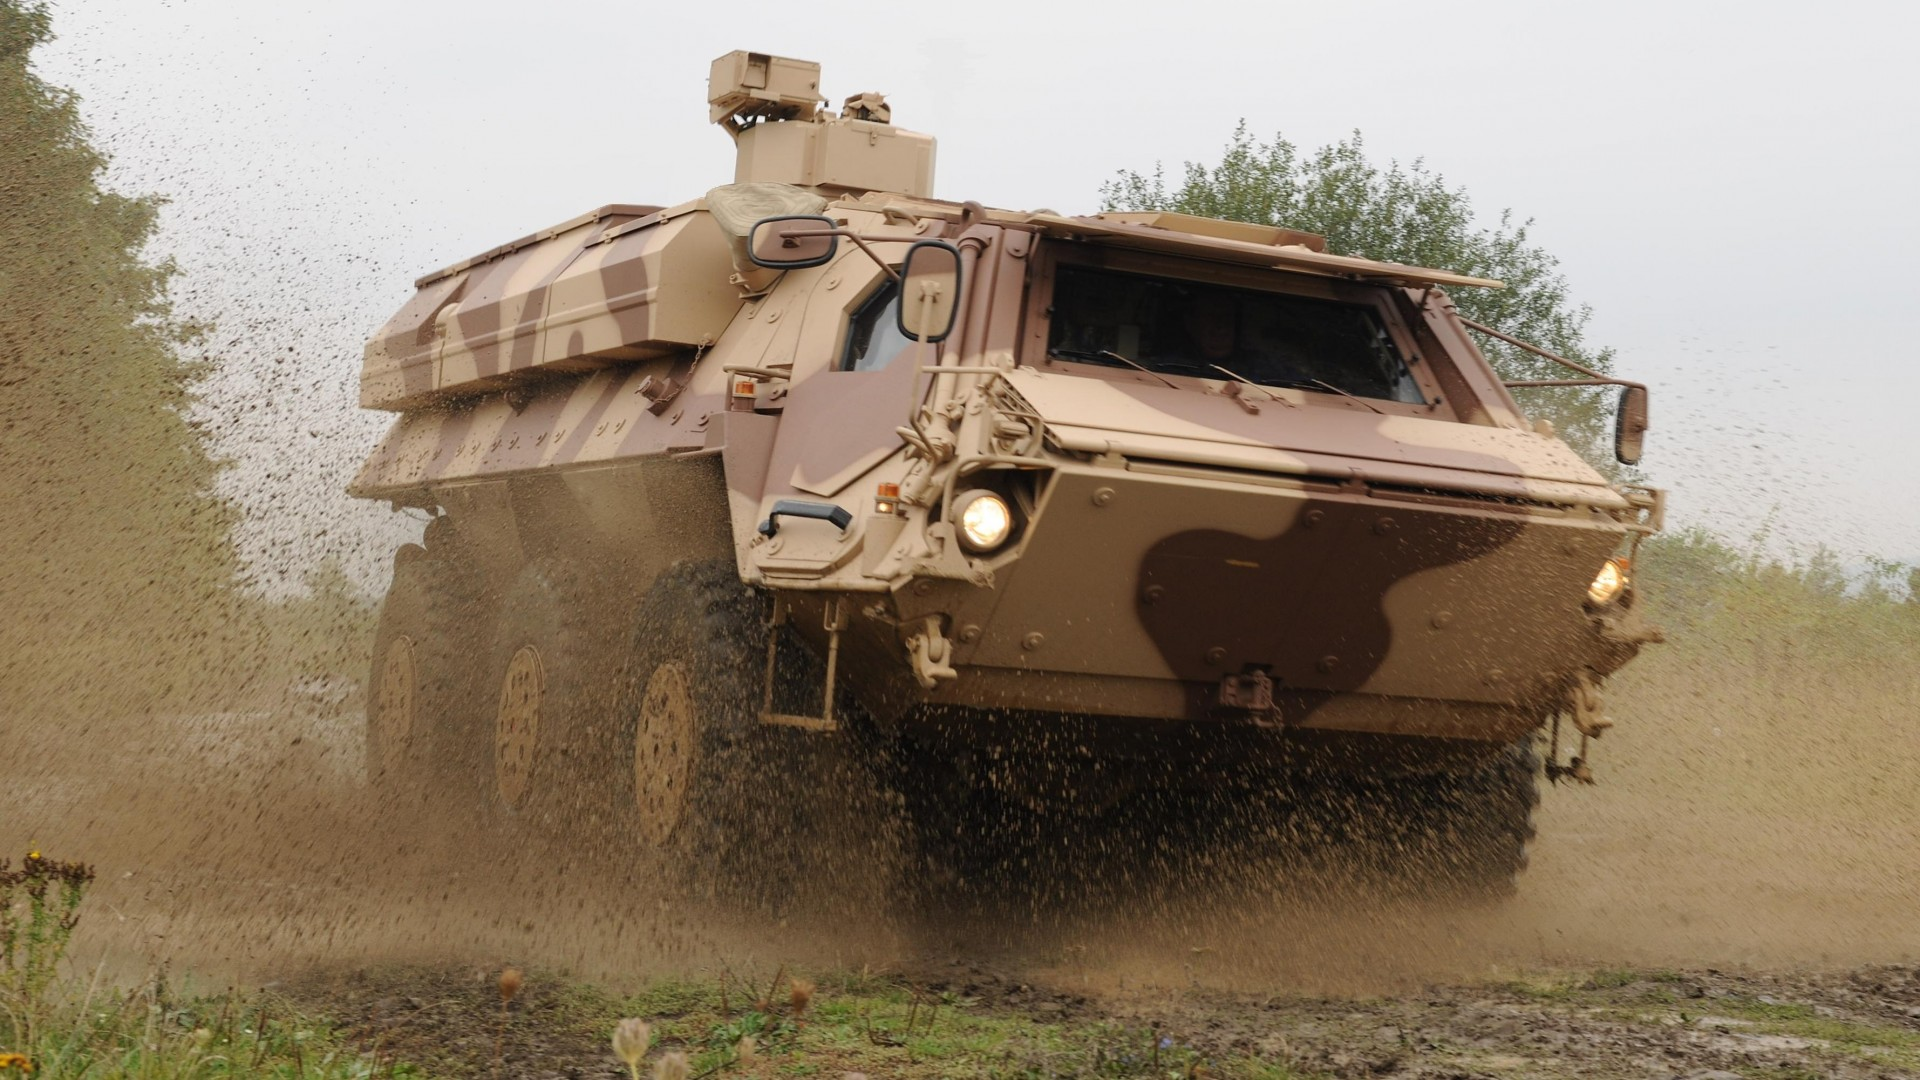 БТР, Лиса, Бундесвер, TPz, Fuchs, Fox, 1A3, armoured personnel carrier, APC, Bundeswehr, M93A1 (horizontal)